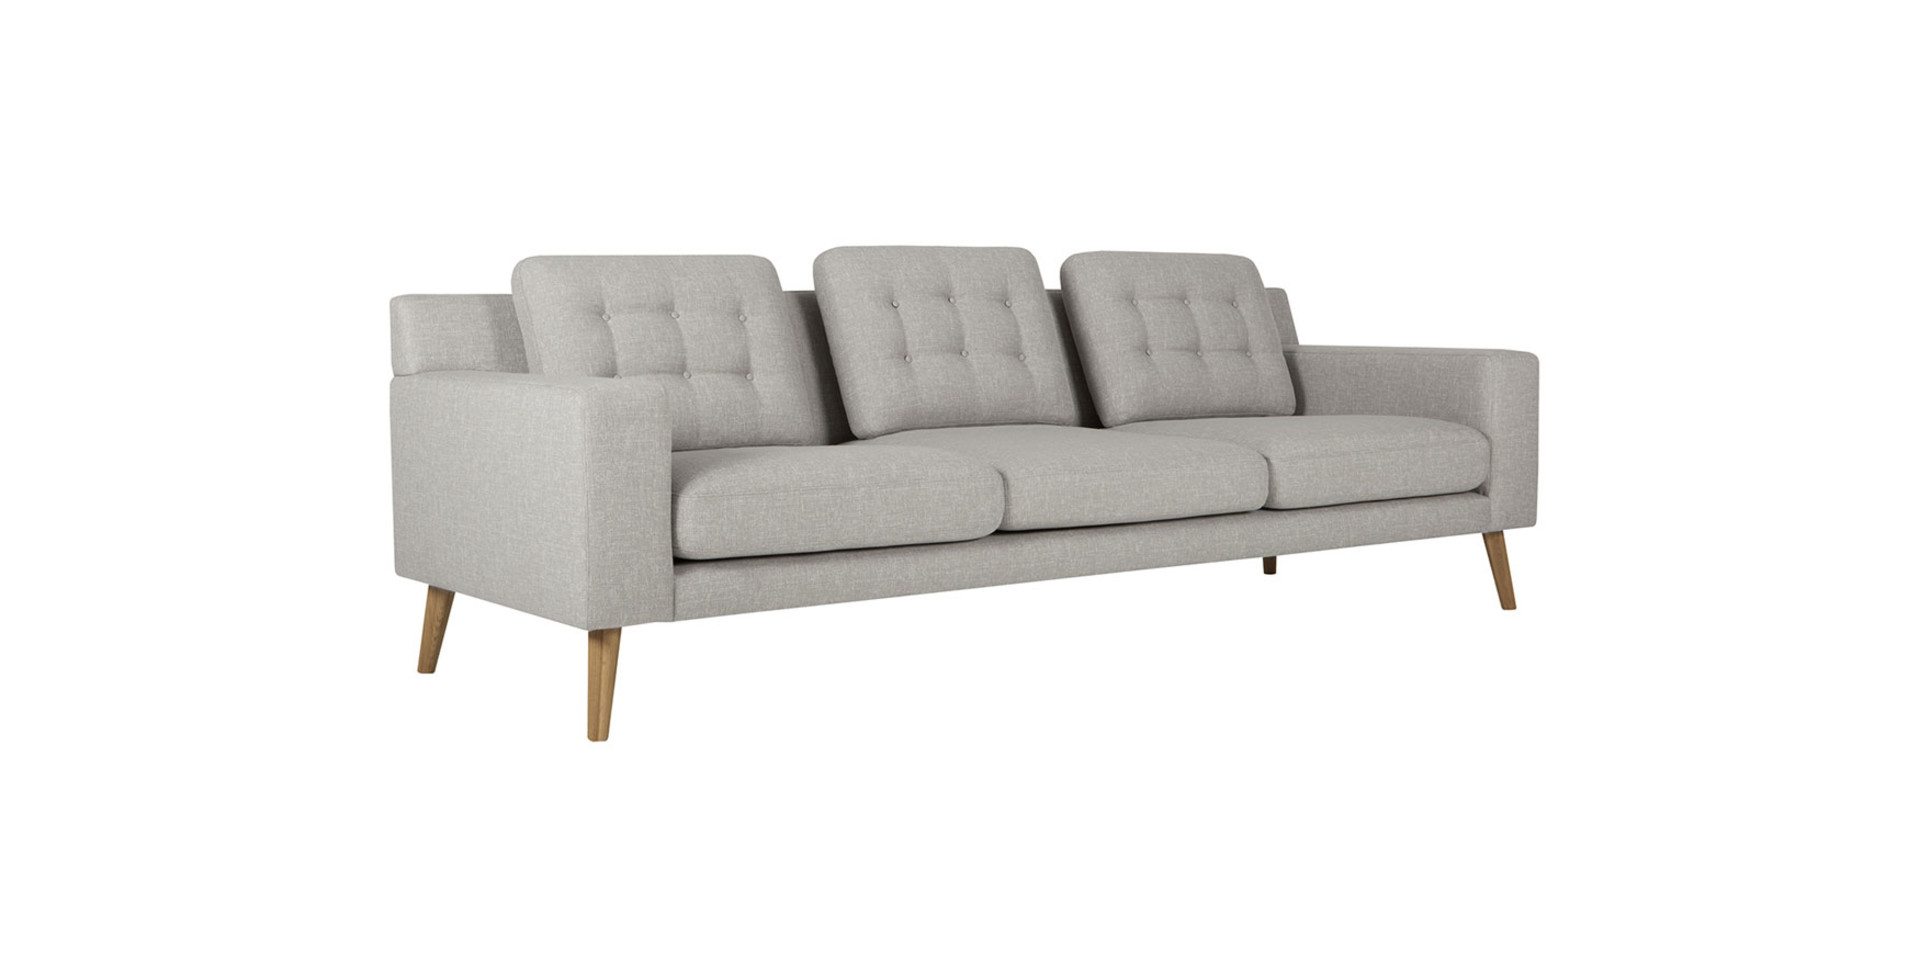 sits-axel-canape-4seater_nancy5_light_grey_2_0